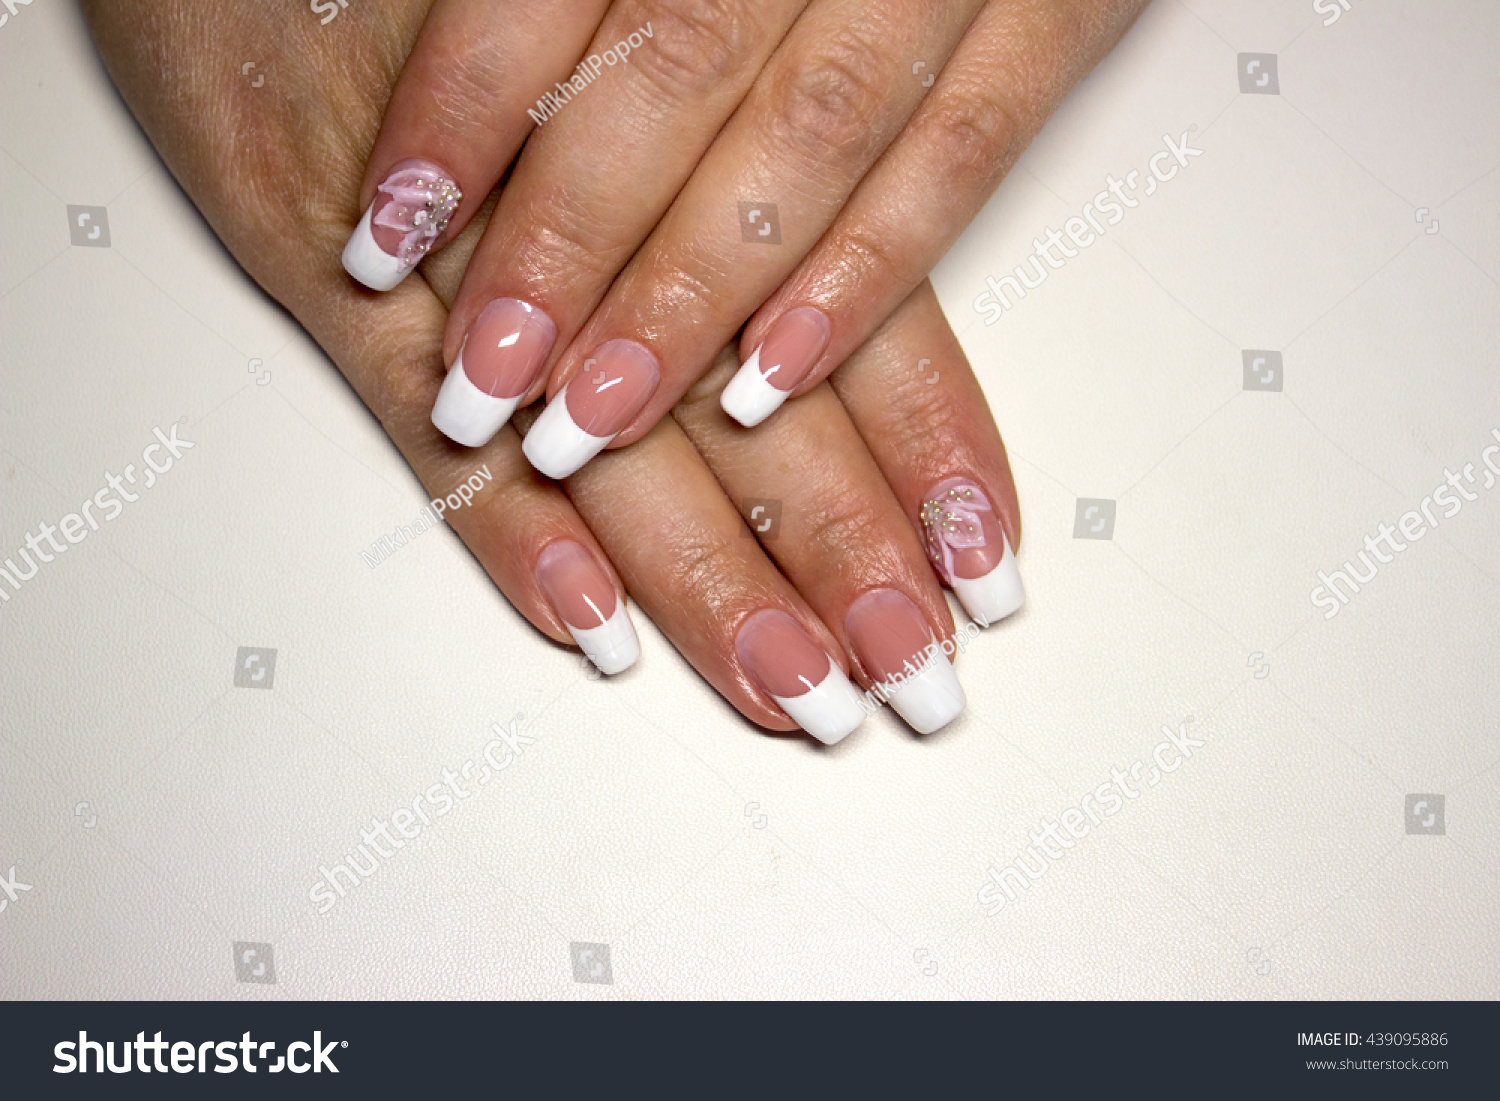 Beautiful Nail Design French Manicure Pink Stock Photo (Royalty Free ...